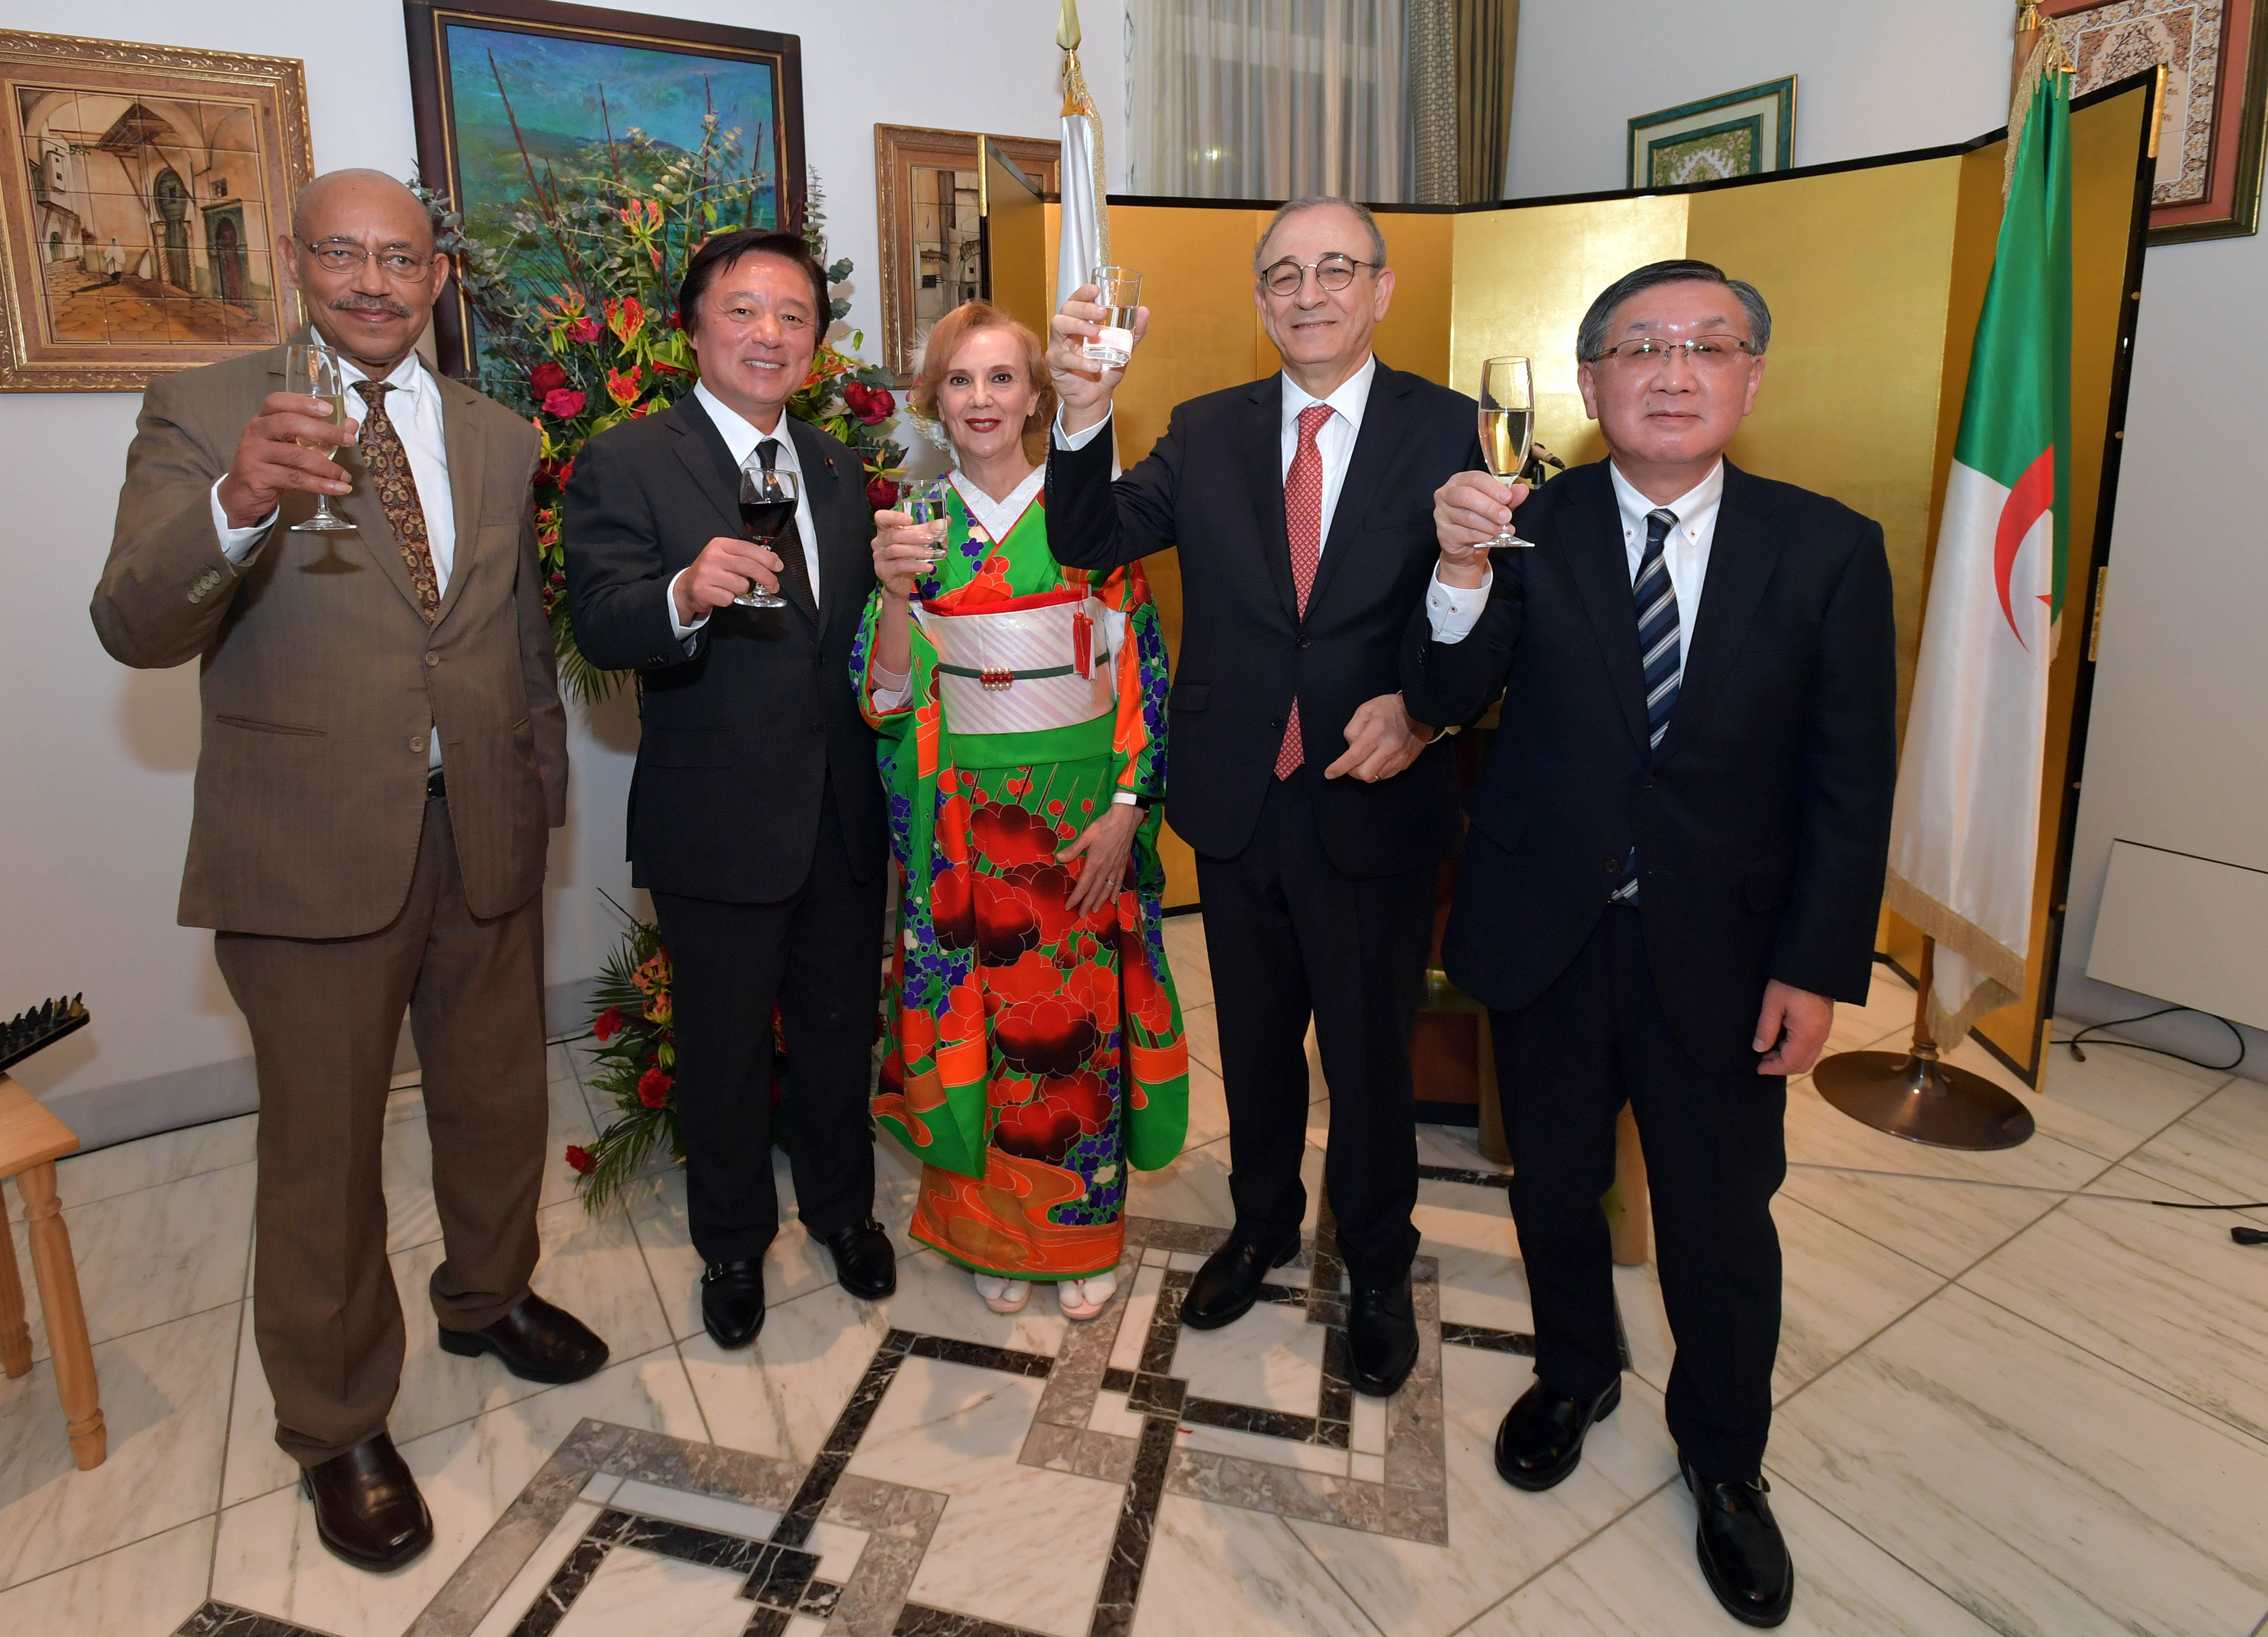 Ambassador of Algeria Mohamed El Amine Bencherif (second from right) and his wife, Amira (center) raise a toast with, from left, Ambassador of Eritrea and Dean of the African Diplomatic Corps Estifanos Afeworki Haile; State Minister for Foreign Affairs Kenji Wakamiya; and Masayuki Sato, representative director, chairman and chief executive officer of JGC Holdings Corporation and chairman of the Japan-Algeria Economic Committee of Keidanren, during a reception to celebrate Algeria's national day at the ambassador's residence in Tokyo on Dec. 20. | YOSHIAKI MIURA